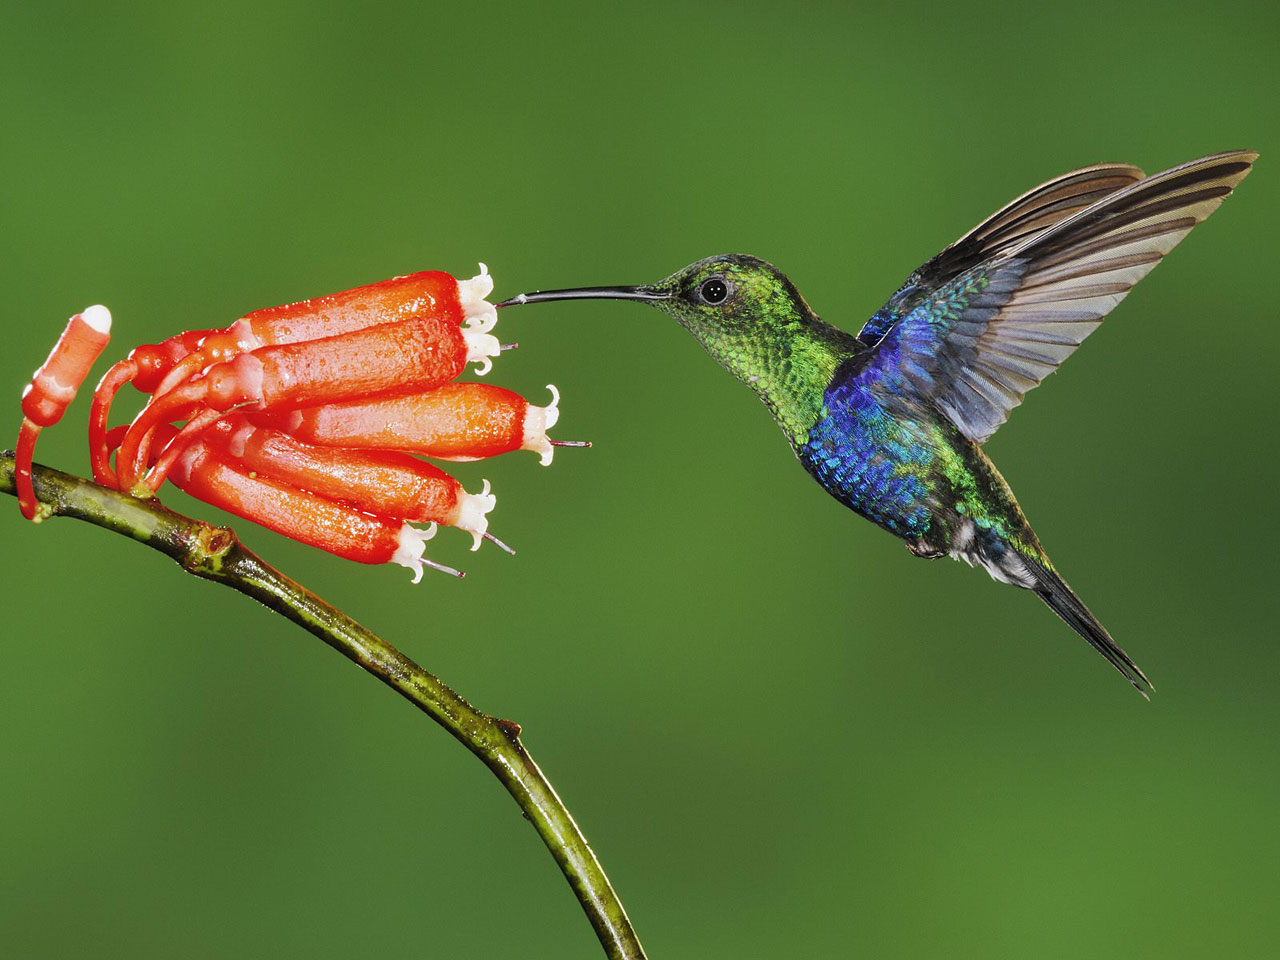 http://4.bp.blogspot.com/-HwSDI10vt1k/TgV5Mf9fQLI/AAAAAAAAUzc/2lDS26QT6wU/s1600/beautiful-hummingbird-wallpaper.jpg